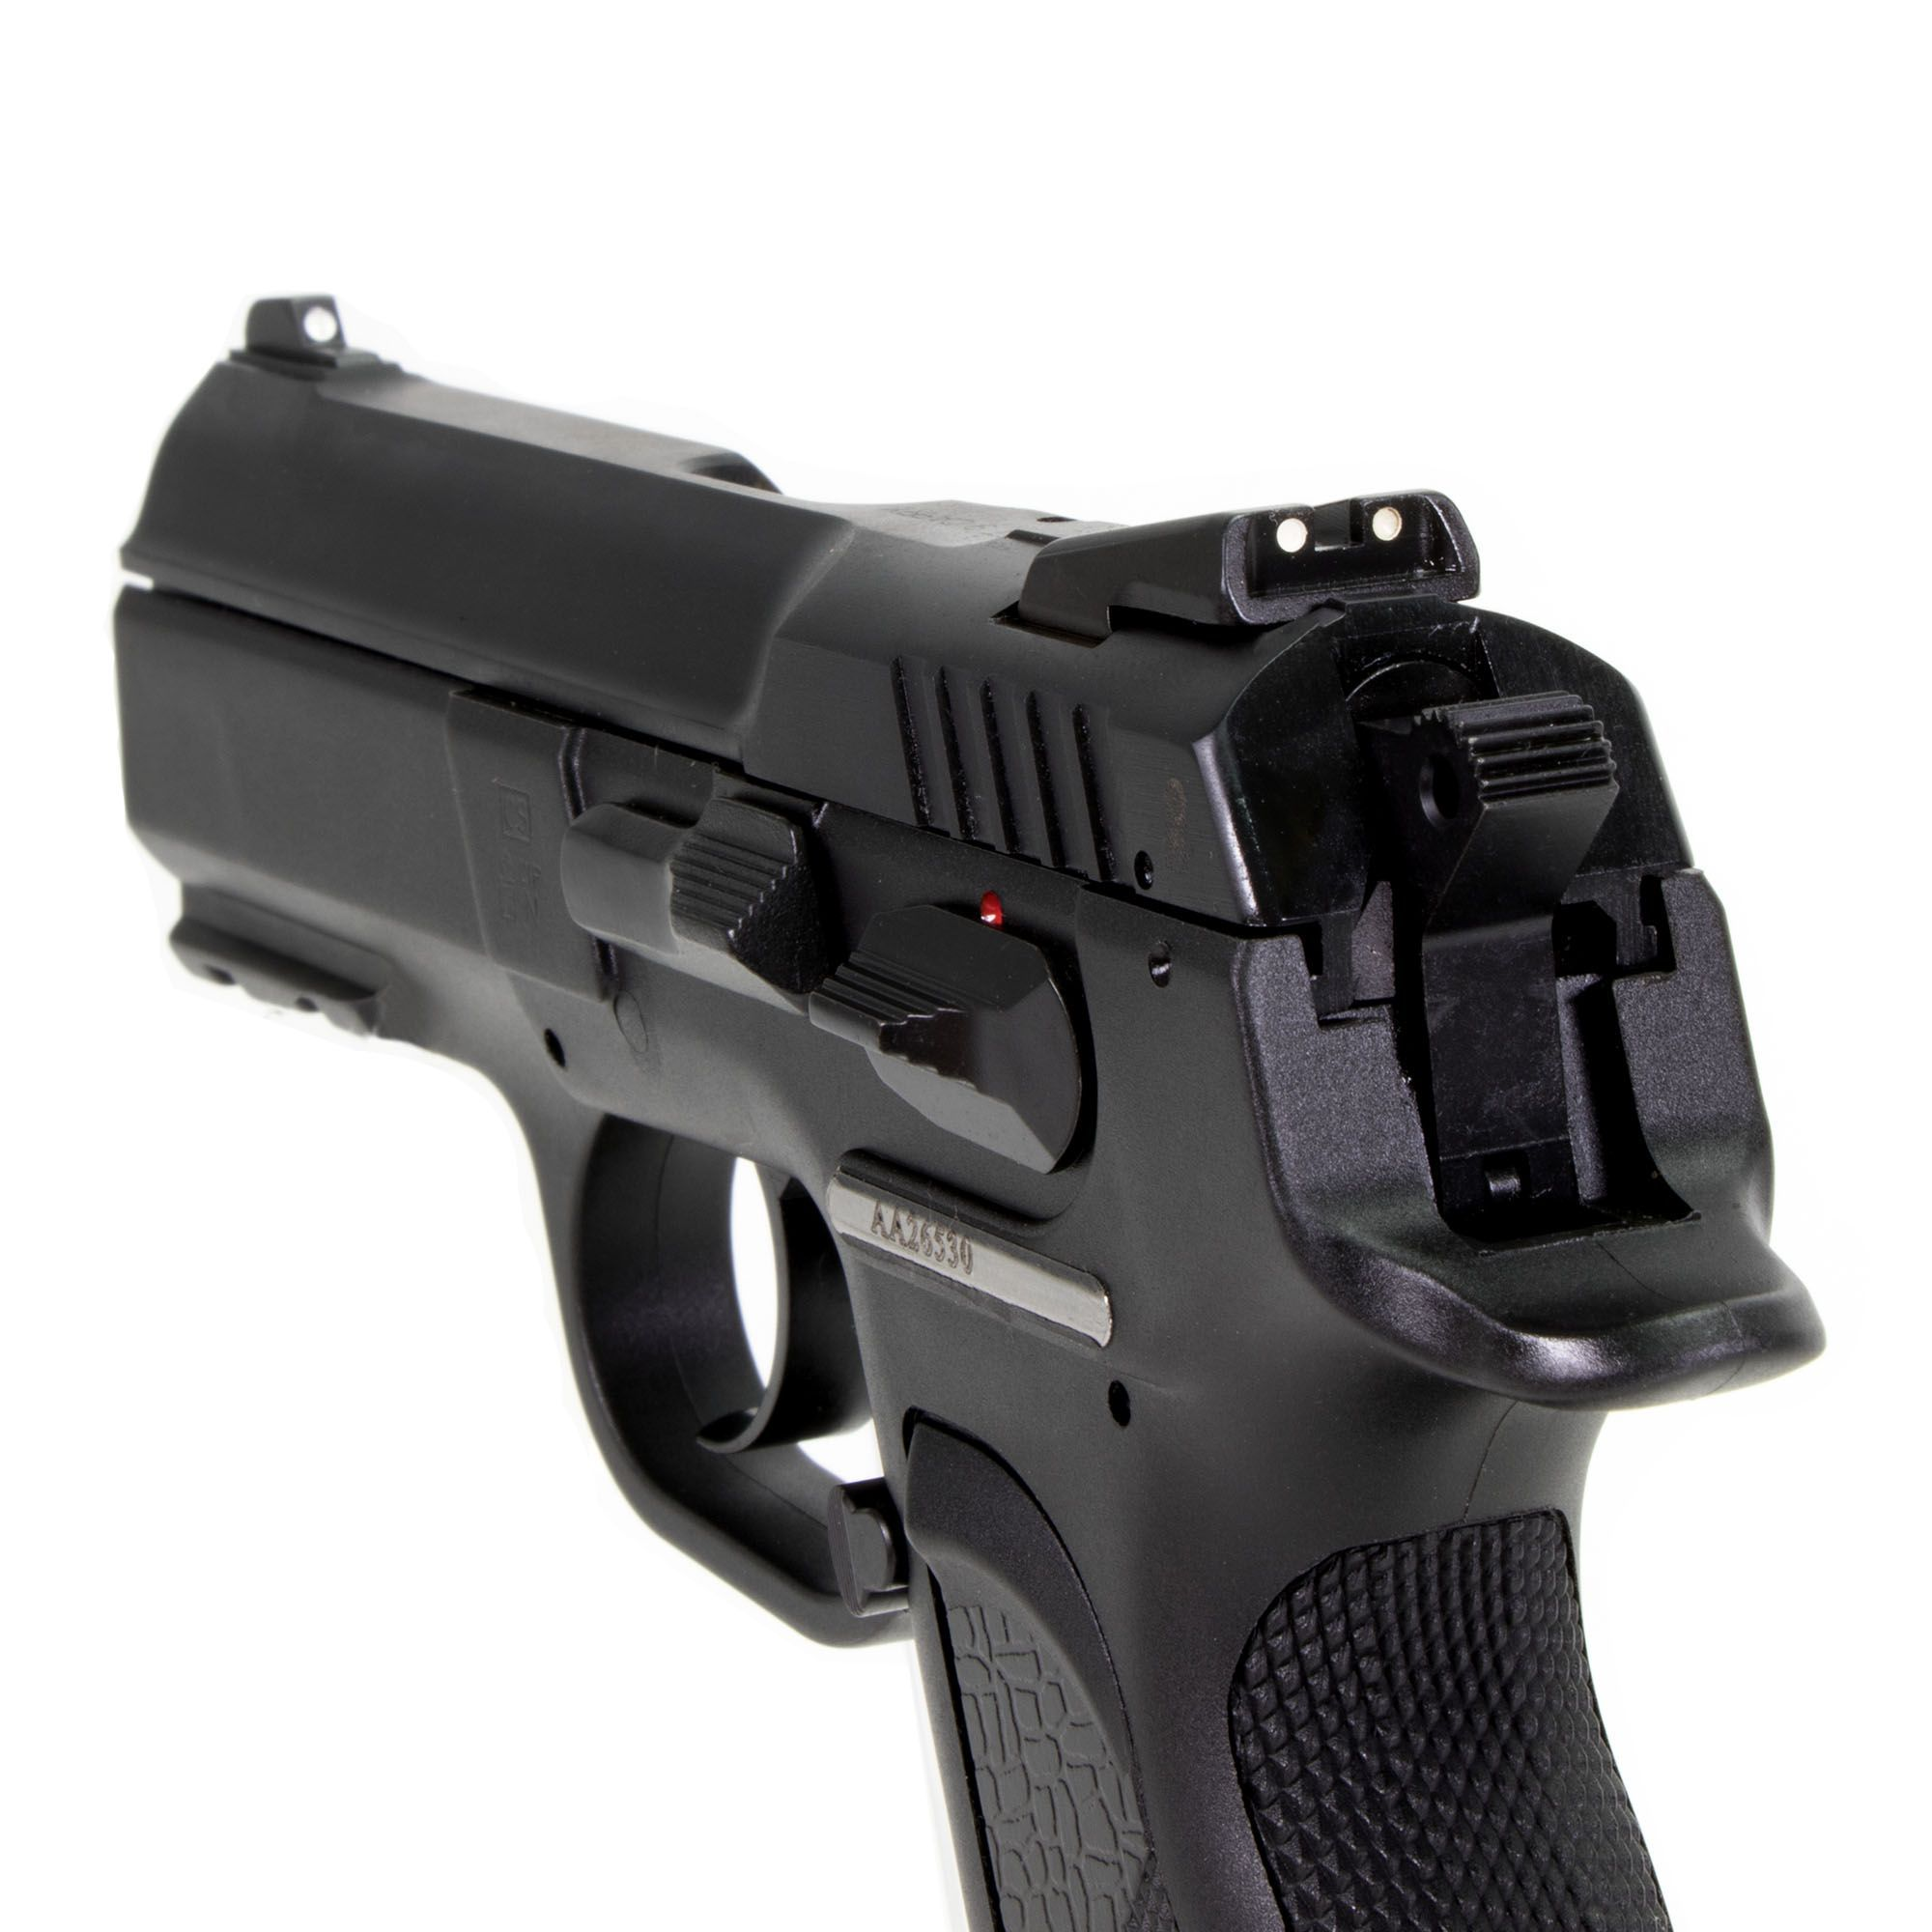 Pistola Tanfoglio FT9 Carry Calibre 380 ACP